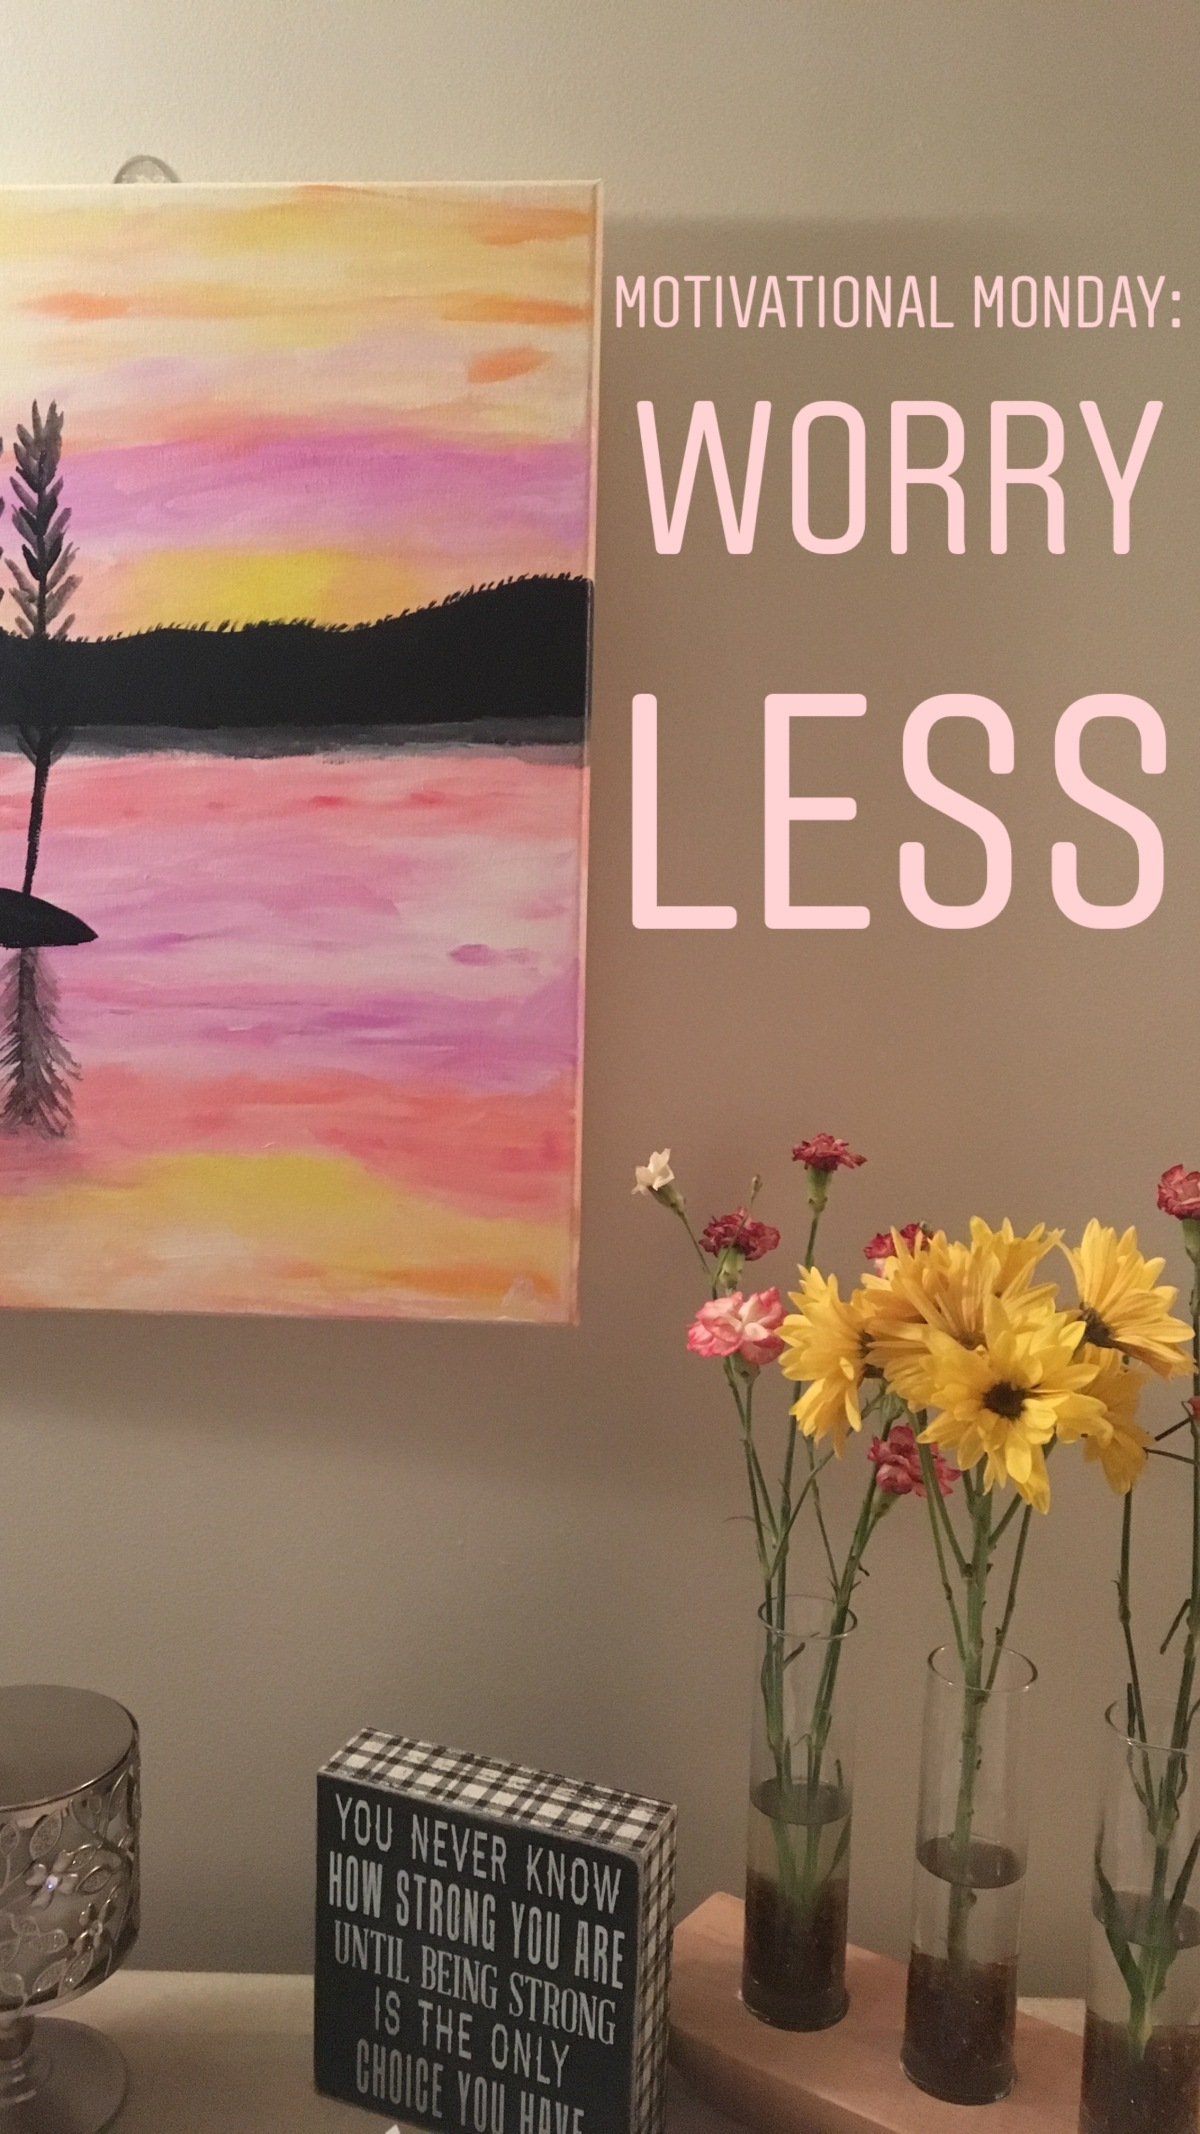 Motivational Monday: Worry Less